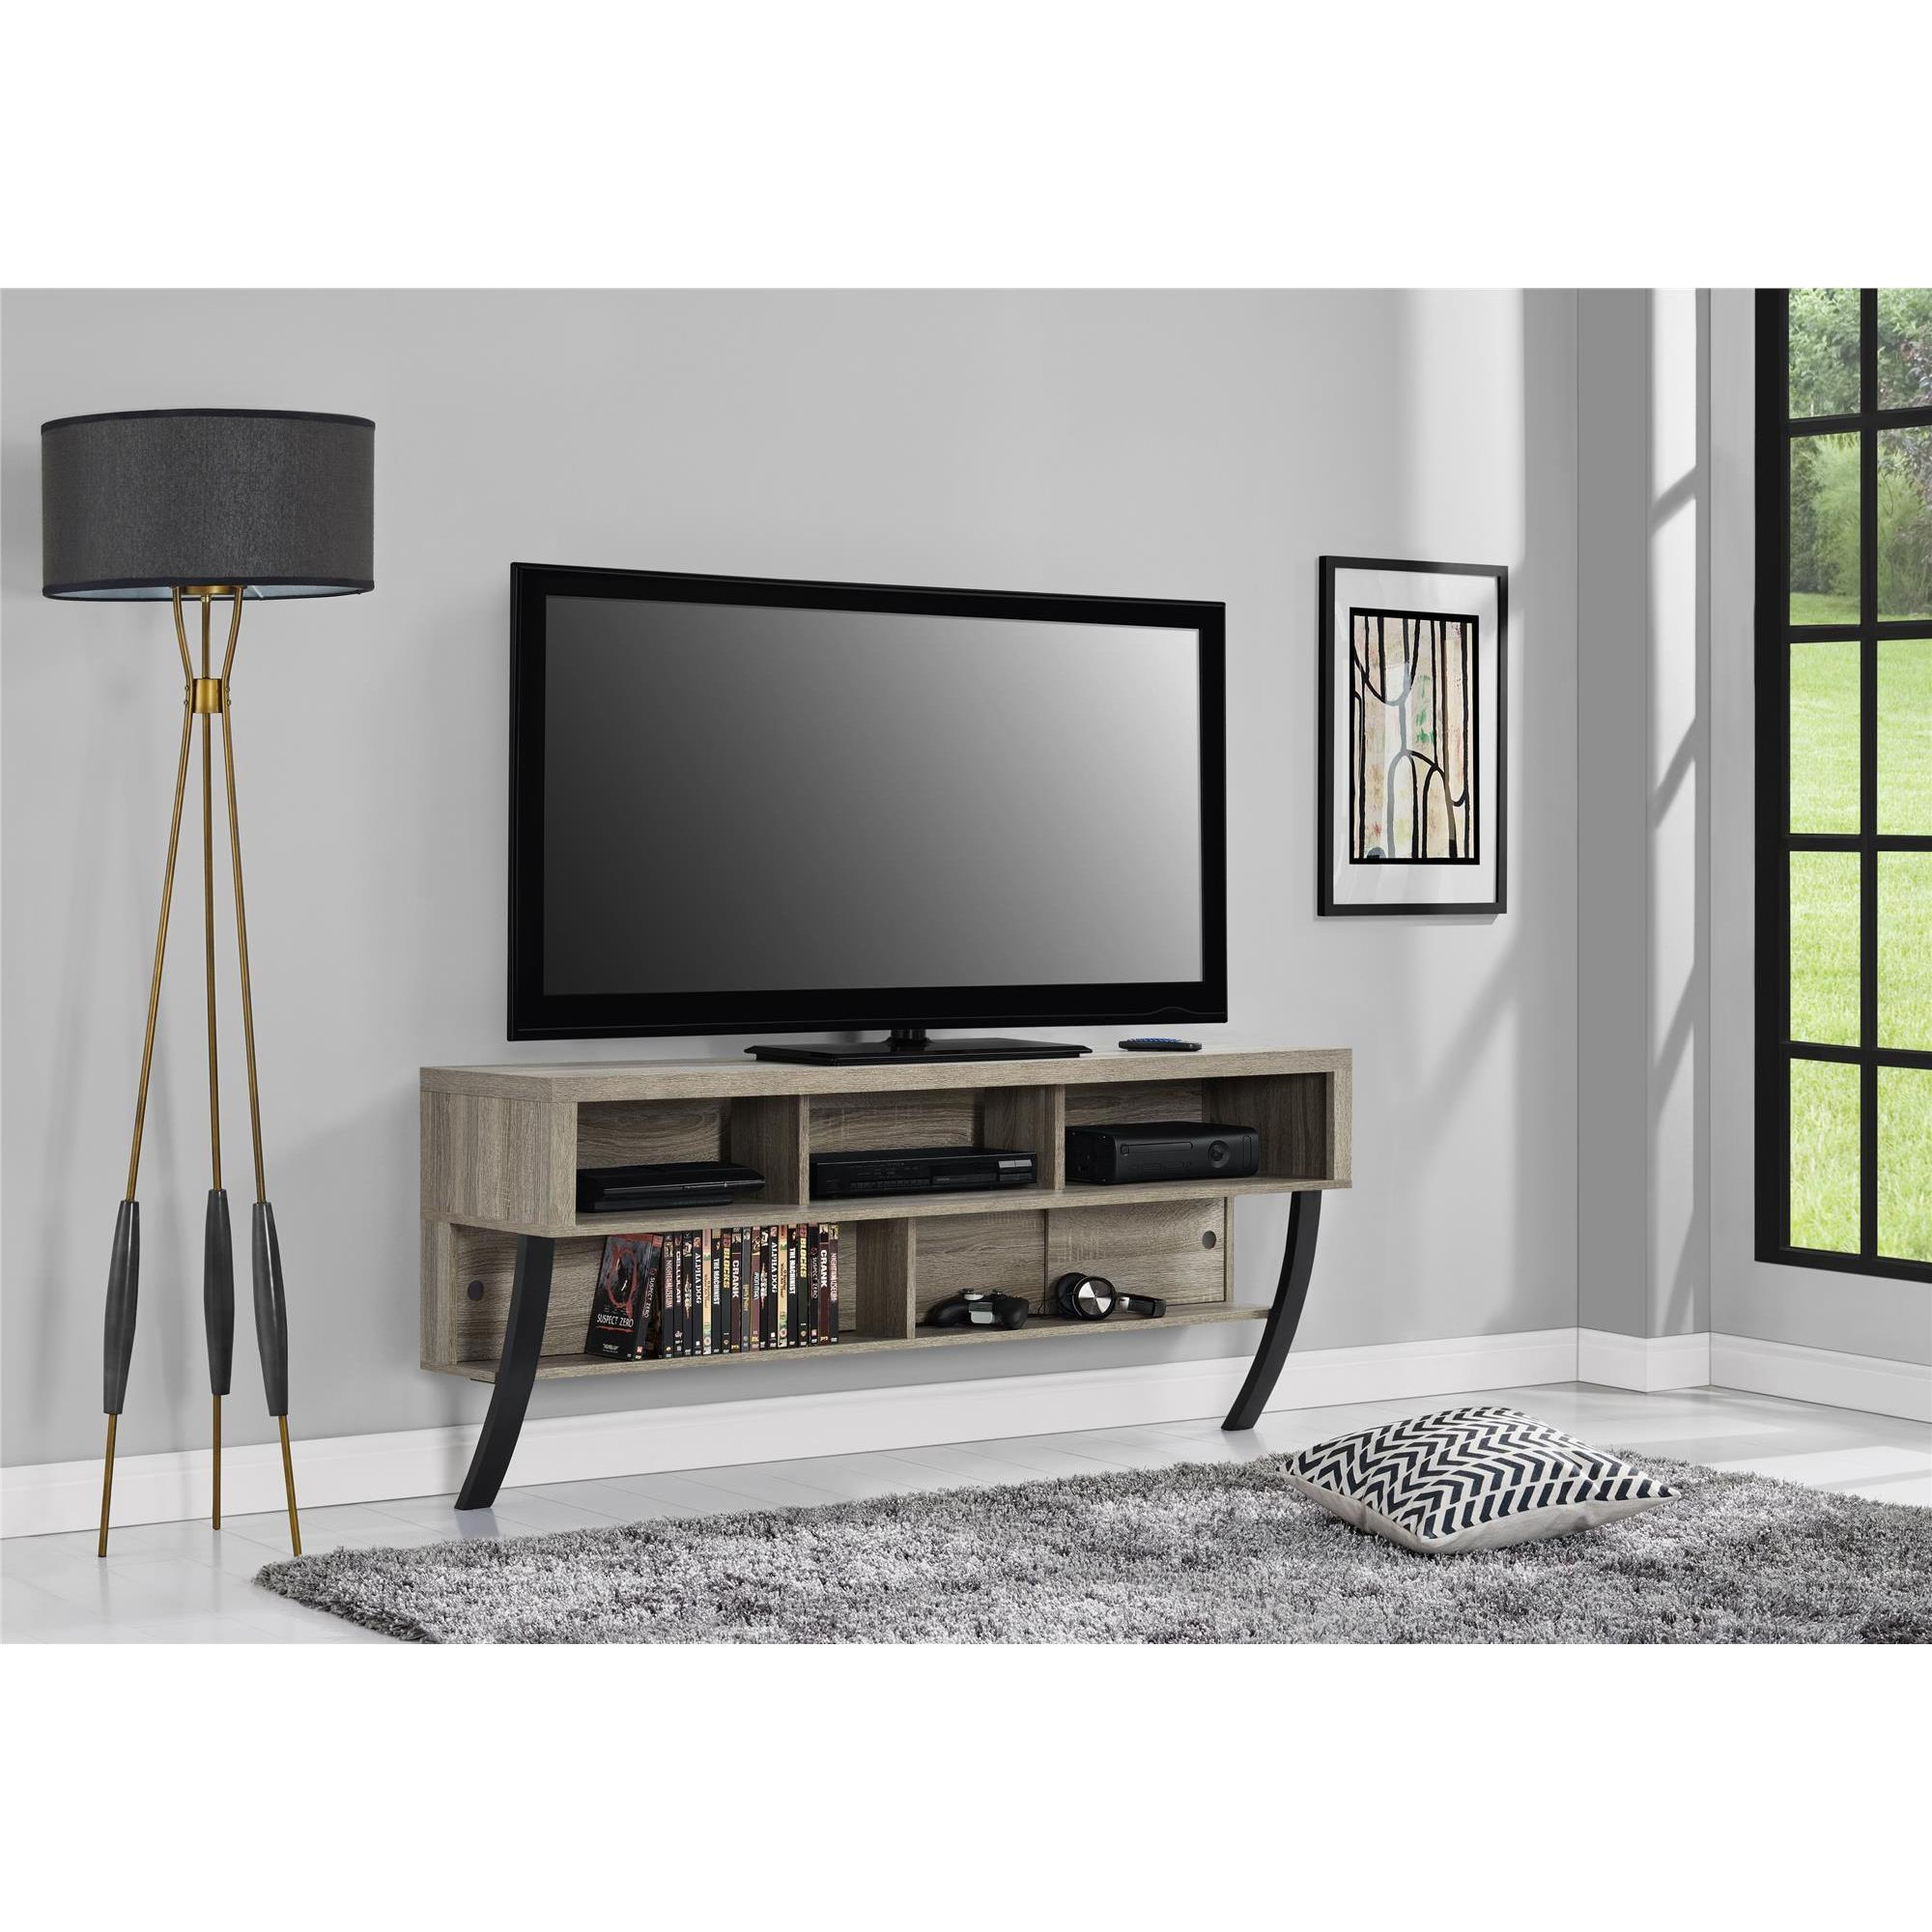 Shop Avenue Greene Yale Wall Mounted Weathered Oak 65 Inch Tv Stand